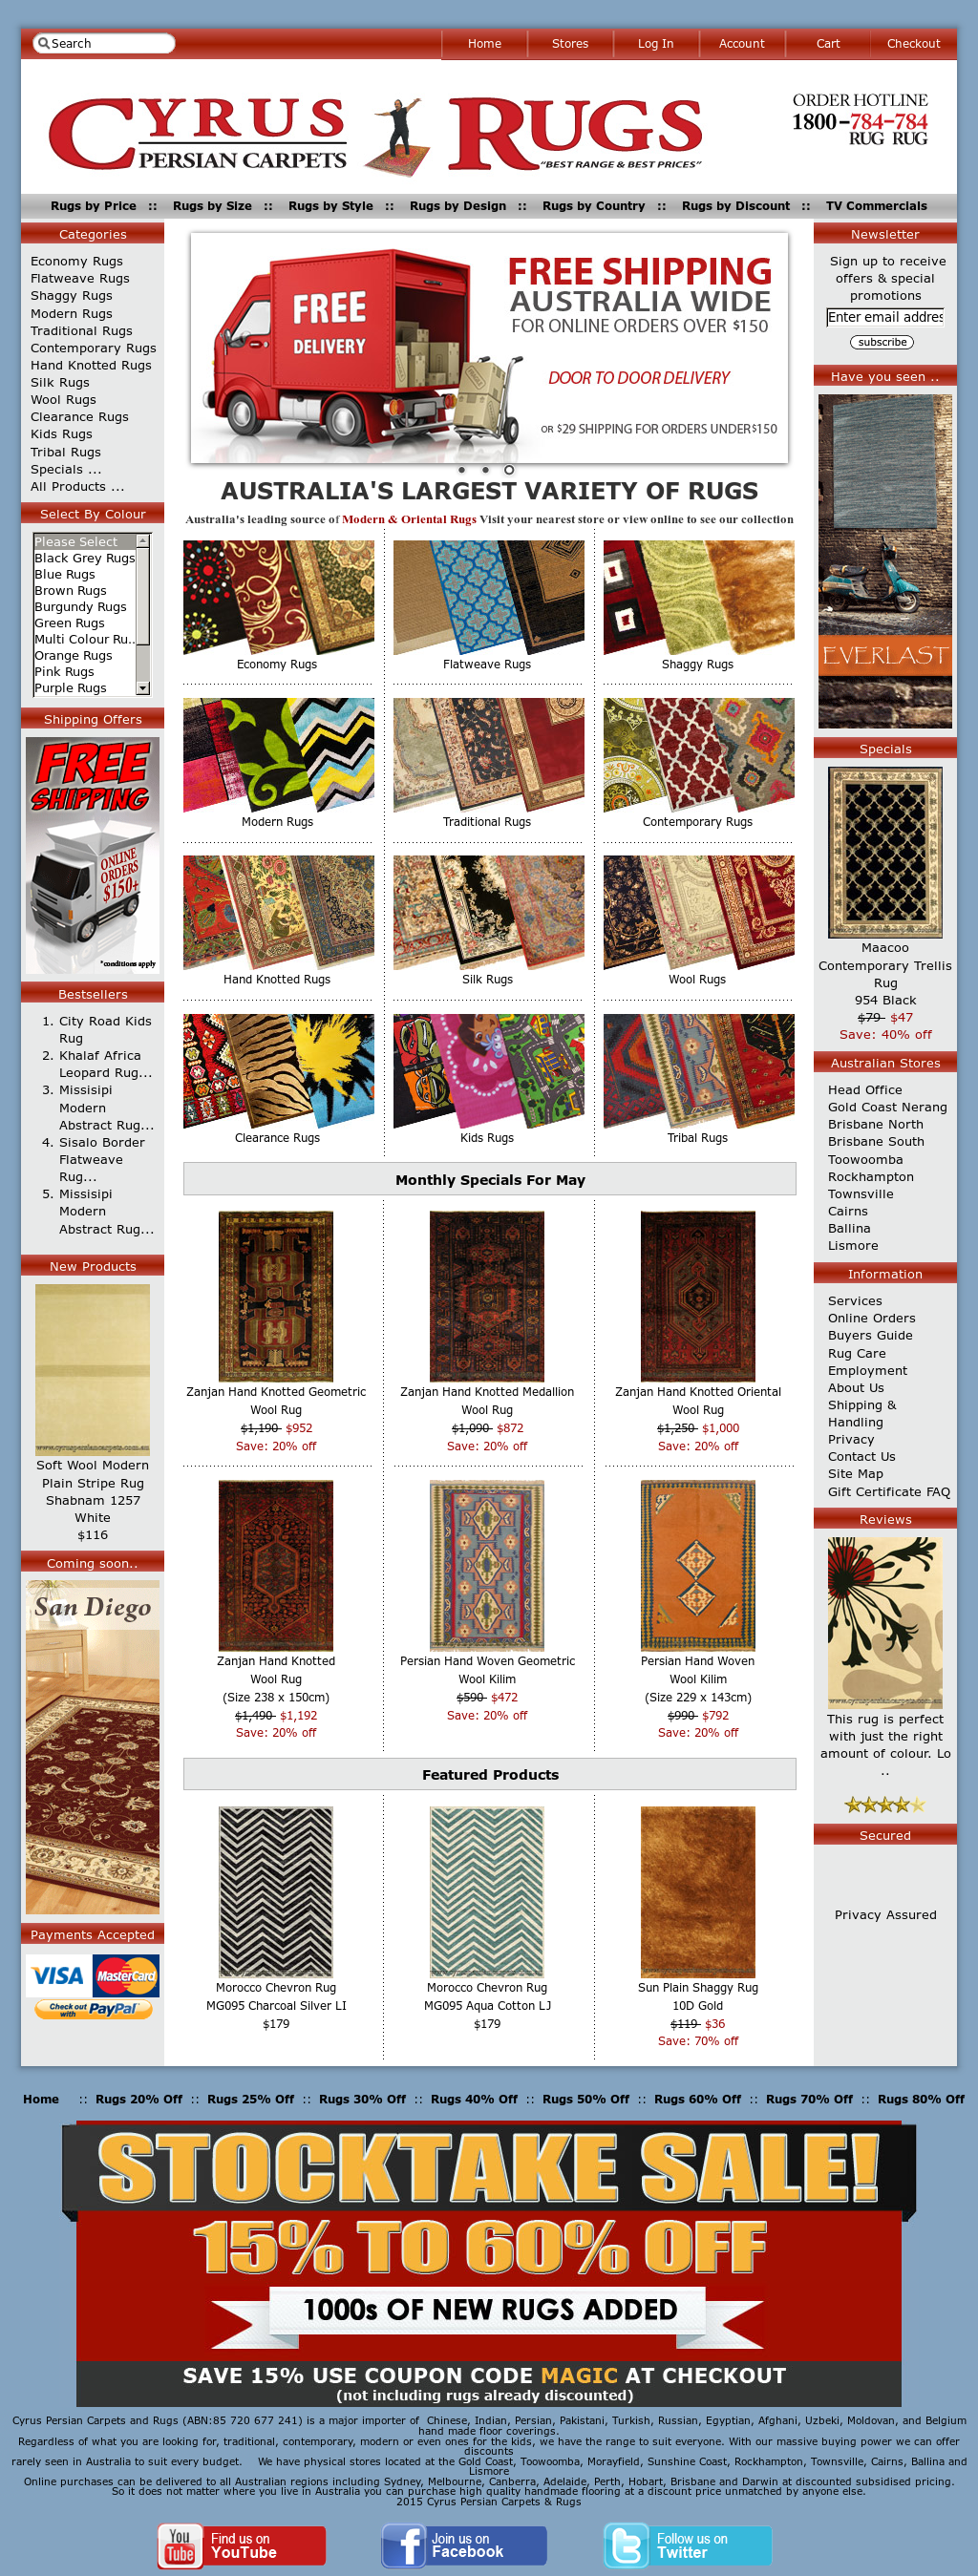 Cyrus Persian Carpets And Rugs Website History